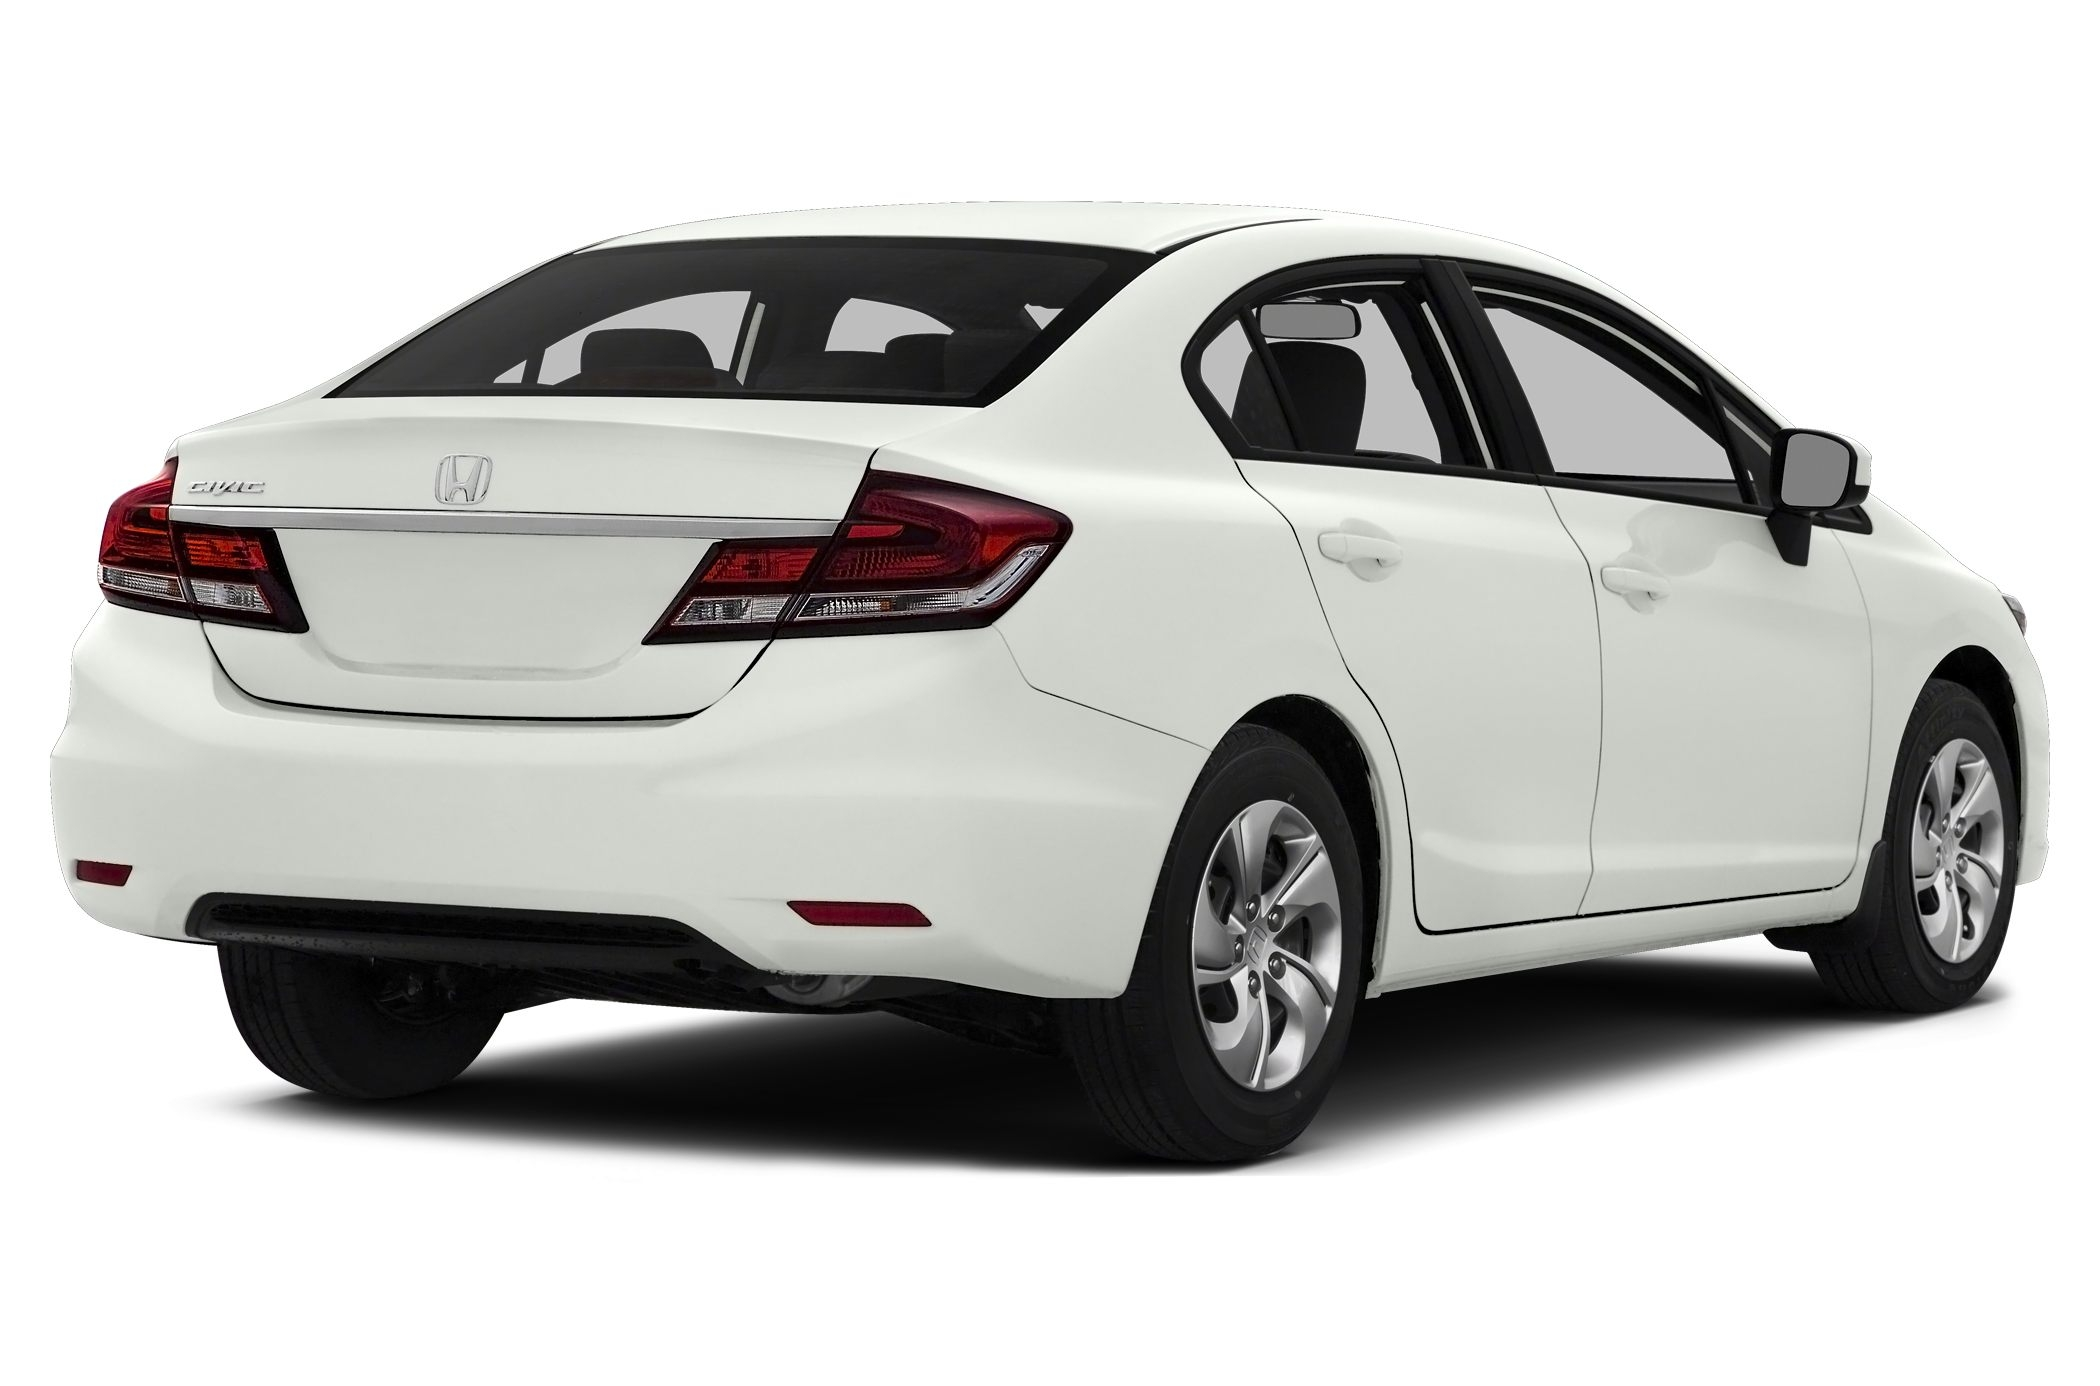 honda civic 2015 price clay bar car gallery low emission 2015 honda civic invoice price